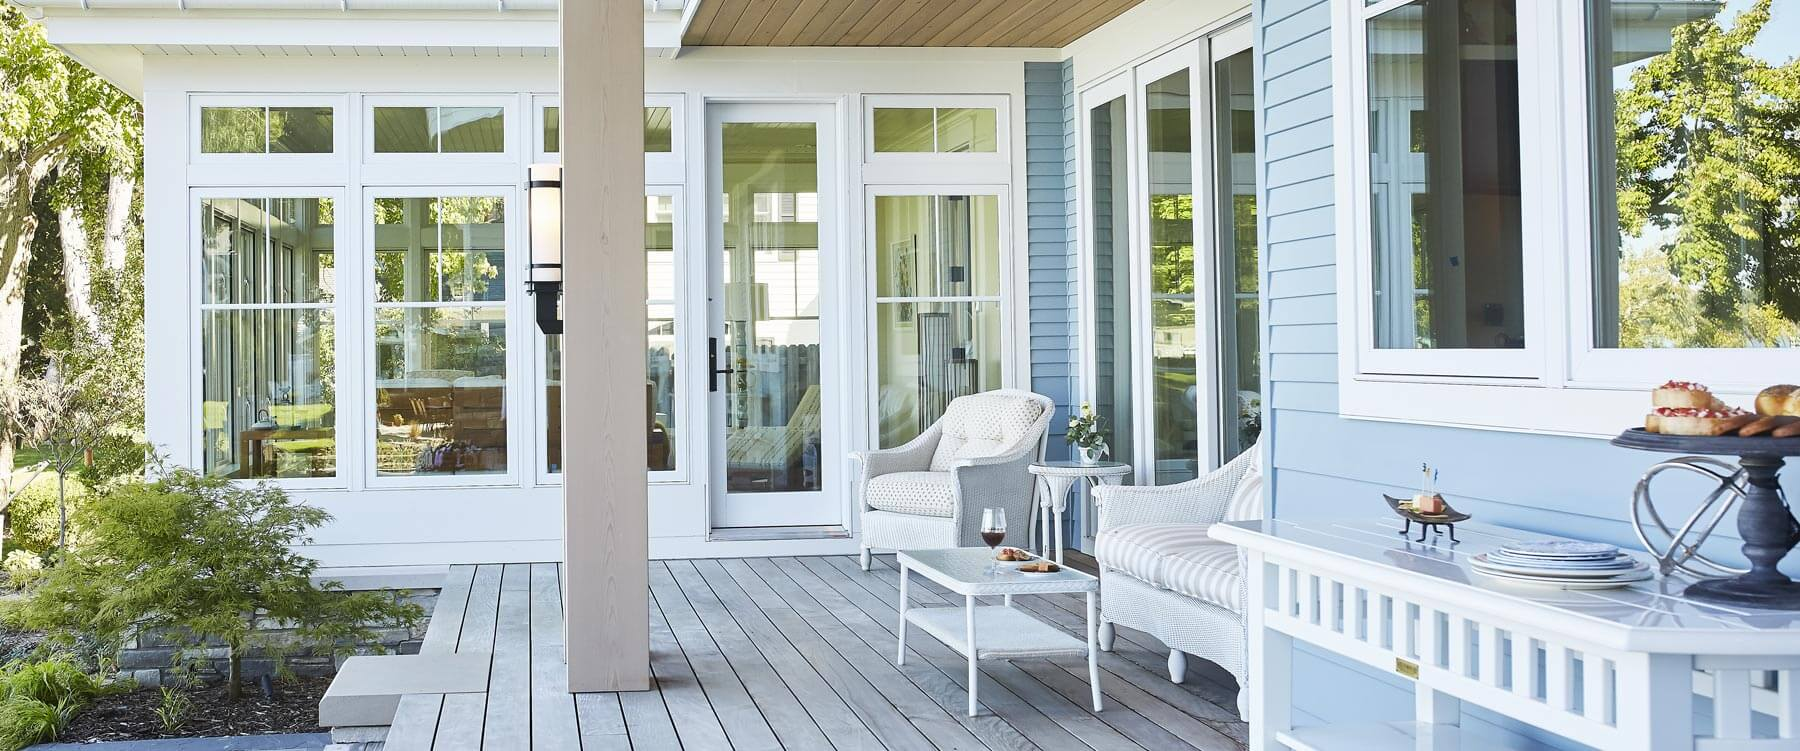 Lakefront cottage exterior deck